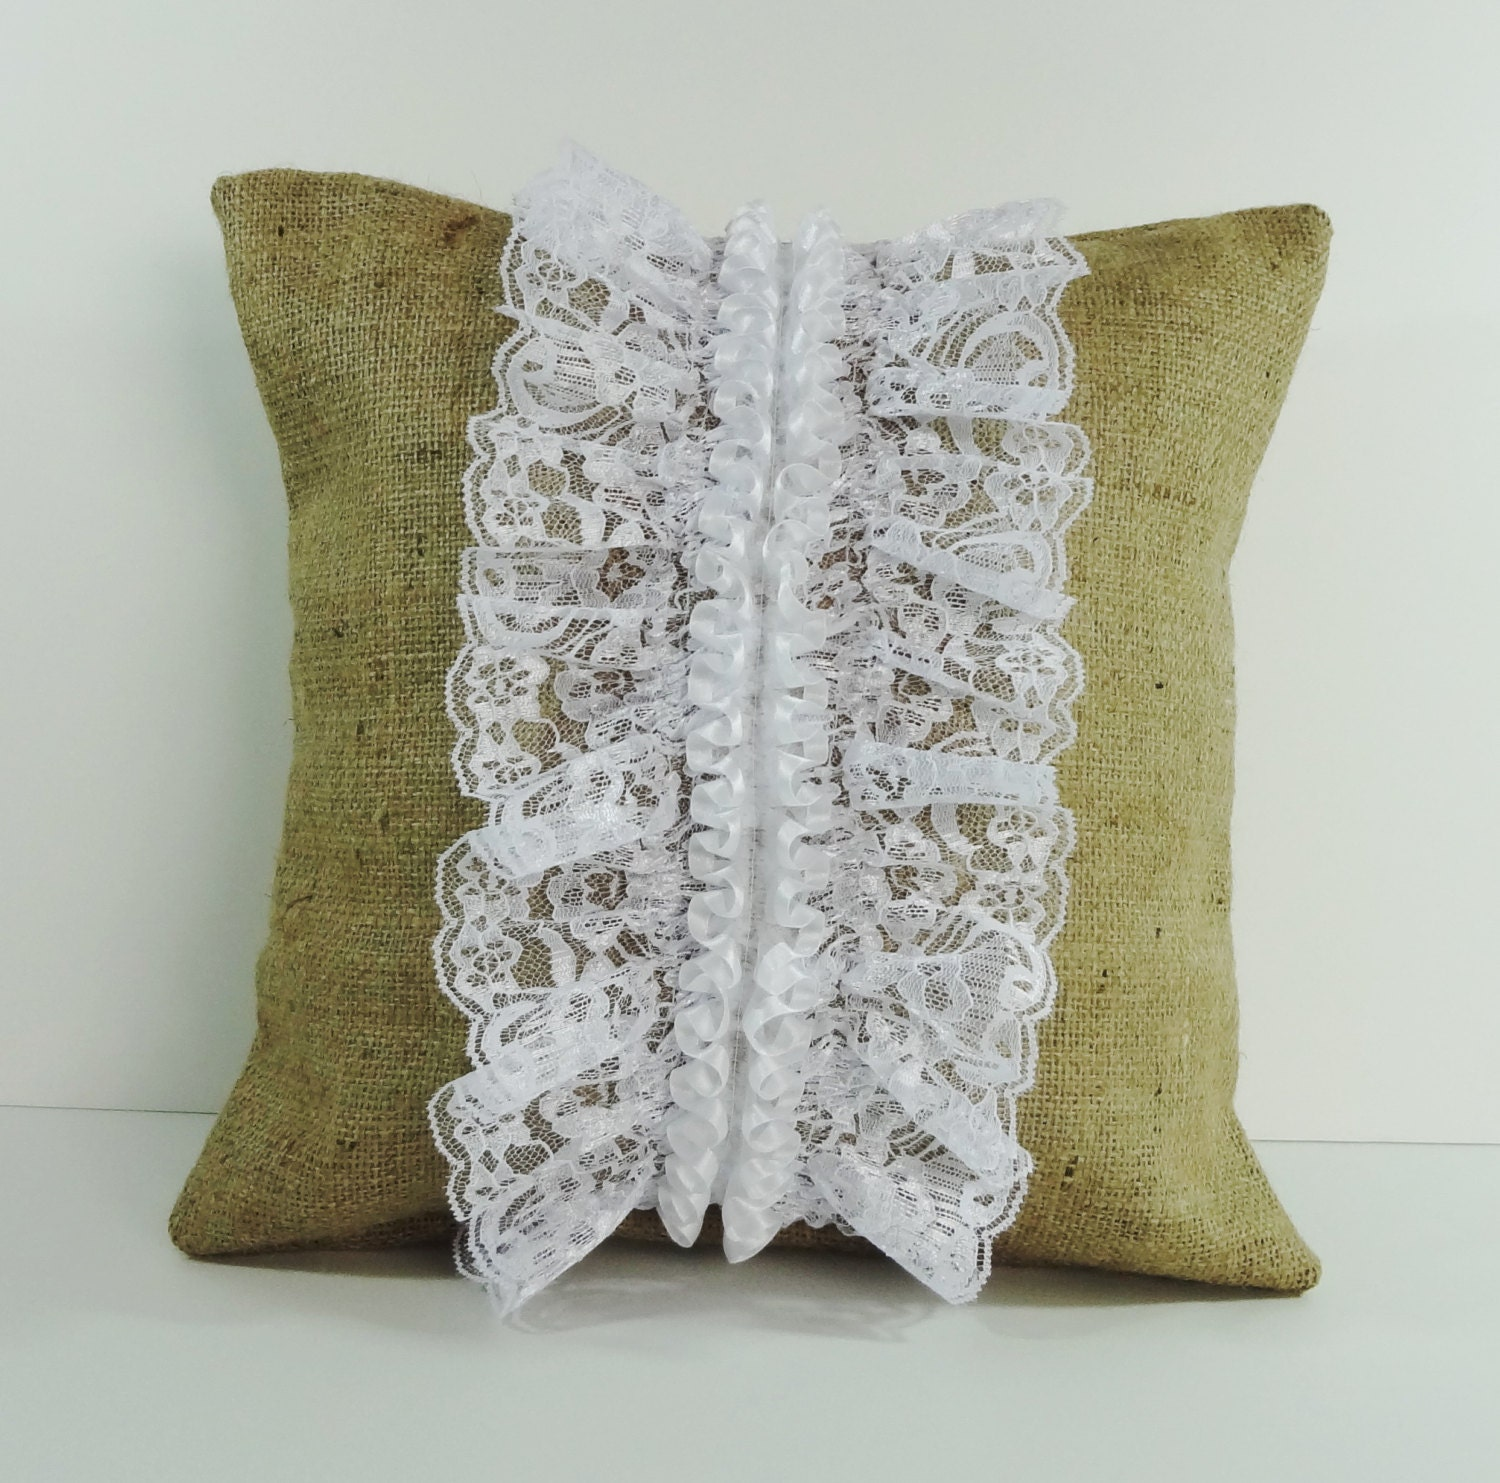 Throw Pillows With Lace : Rustic Burlap and Lace Decorative Pillow Cover Cushion Cover